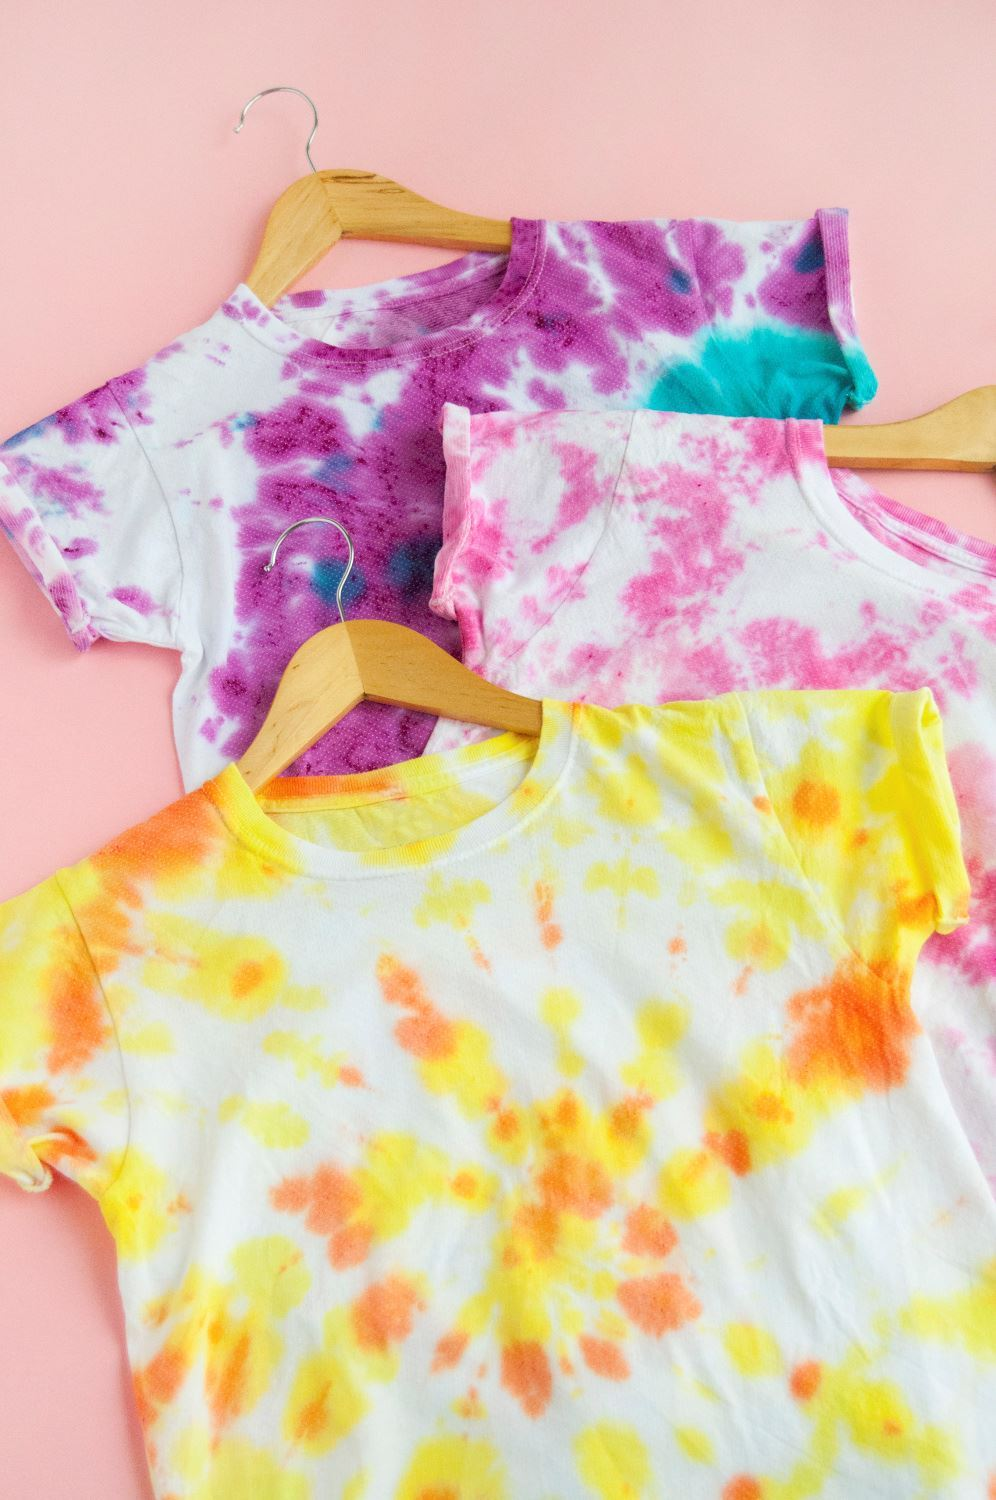 Candy-Inspired Two-Minute Tie Dye Shirts